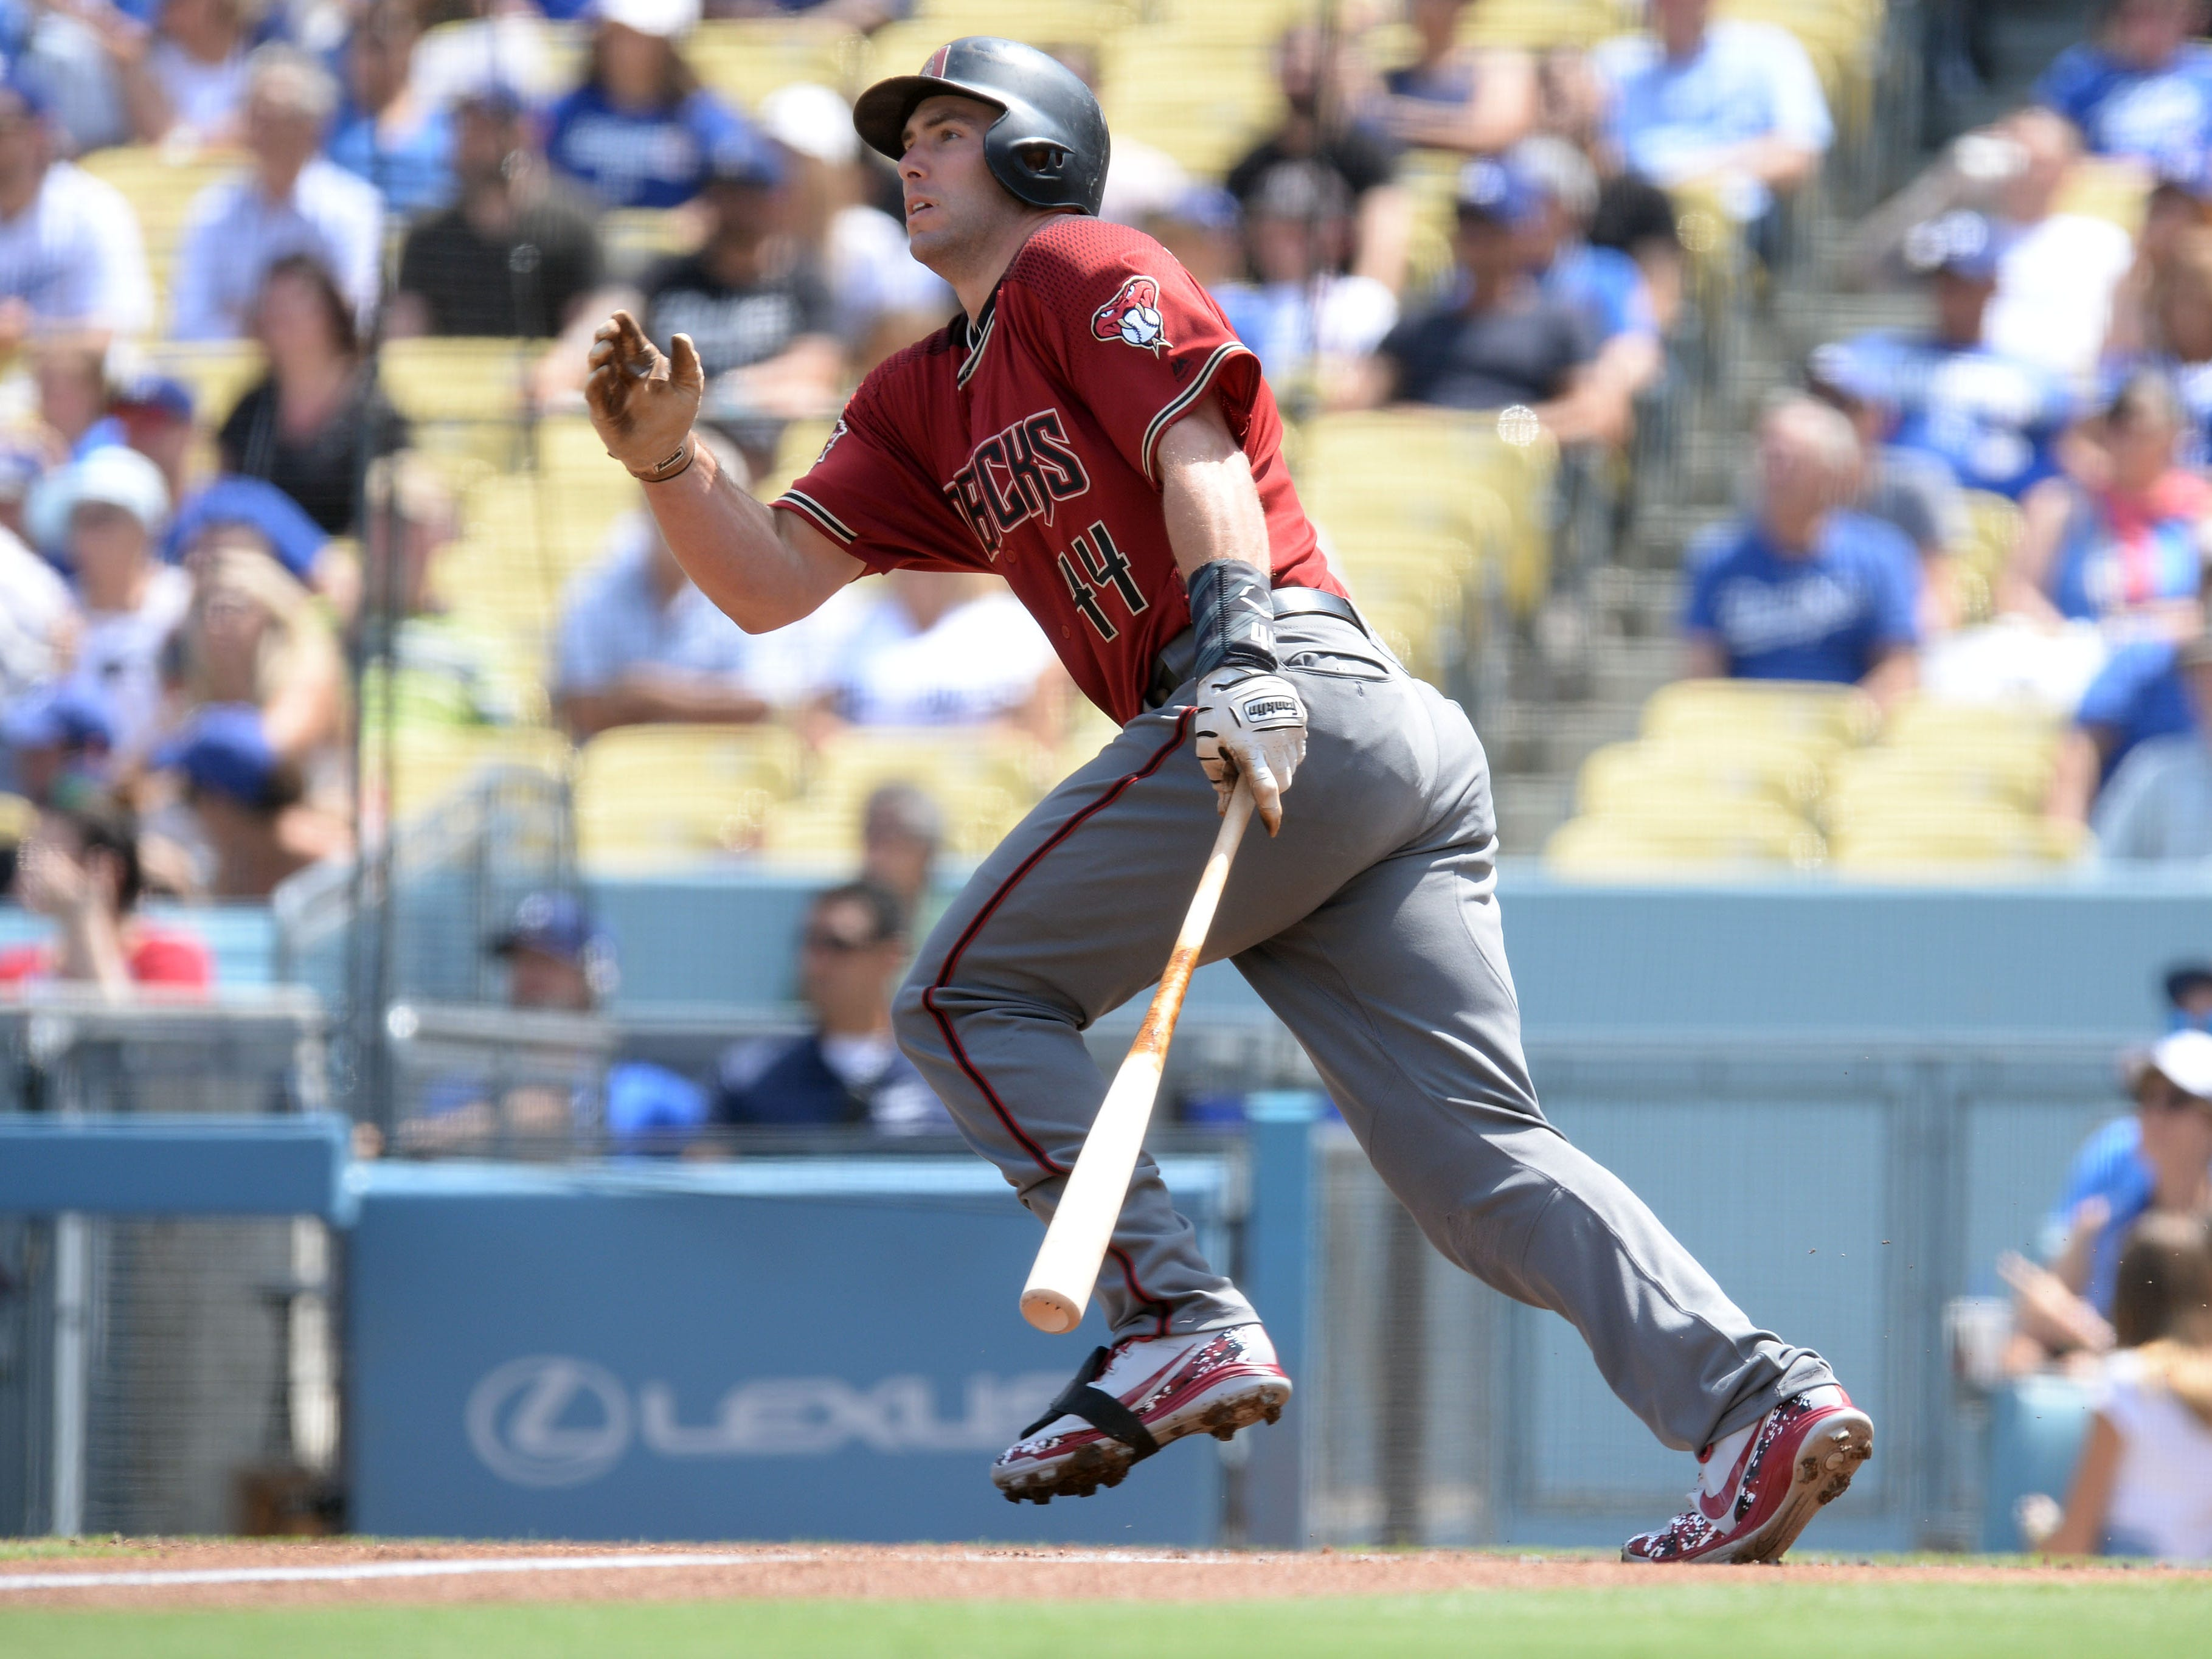 September 2, 2018; Los Angeles, CA, USA; Arizona Diamondbacks first baseman Paul Goldschmidt (44) hits a single against the Los Angeles Dodgers in the first inning at Dodger Stadium. Mandatory Credit: Gary A. Vasquez-USA TODAY Sports